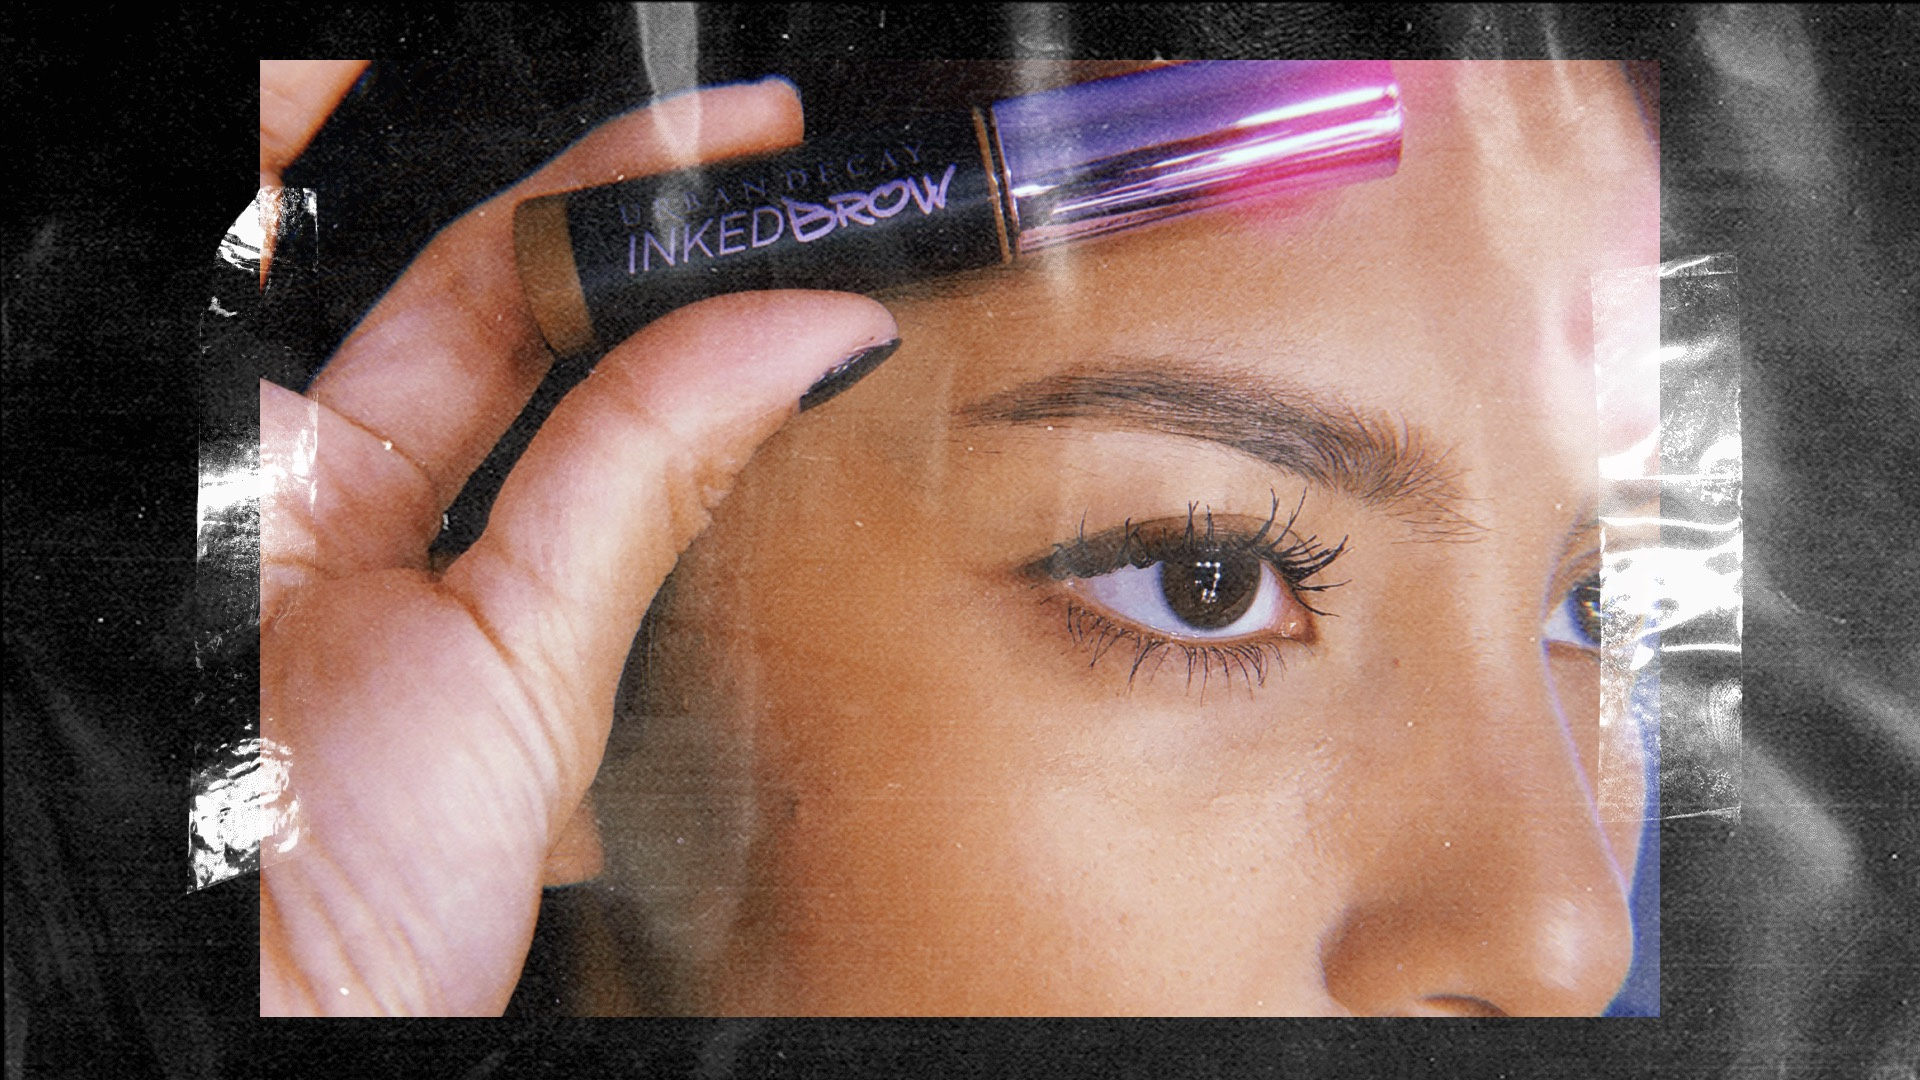 urban decay inked brow neutral nana review swatches